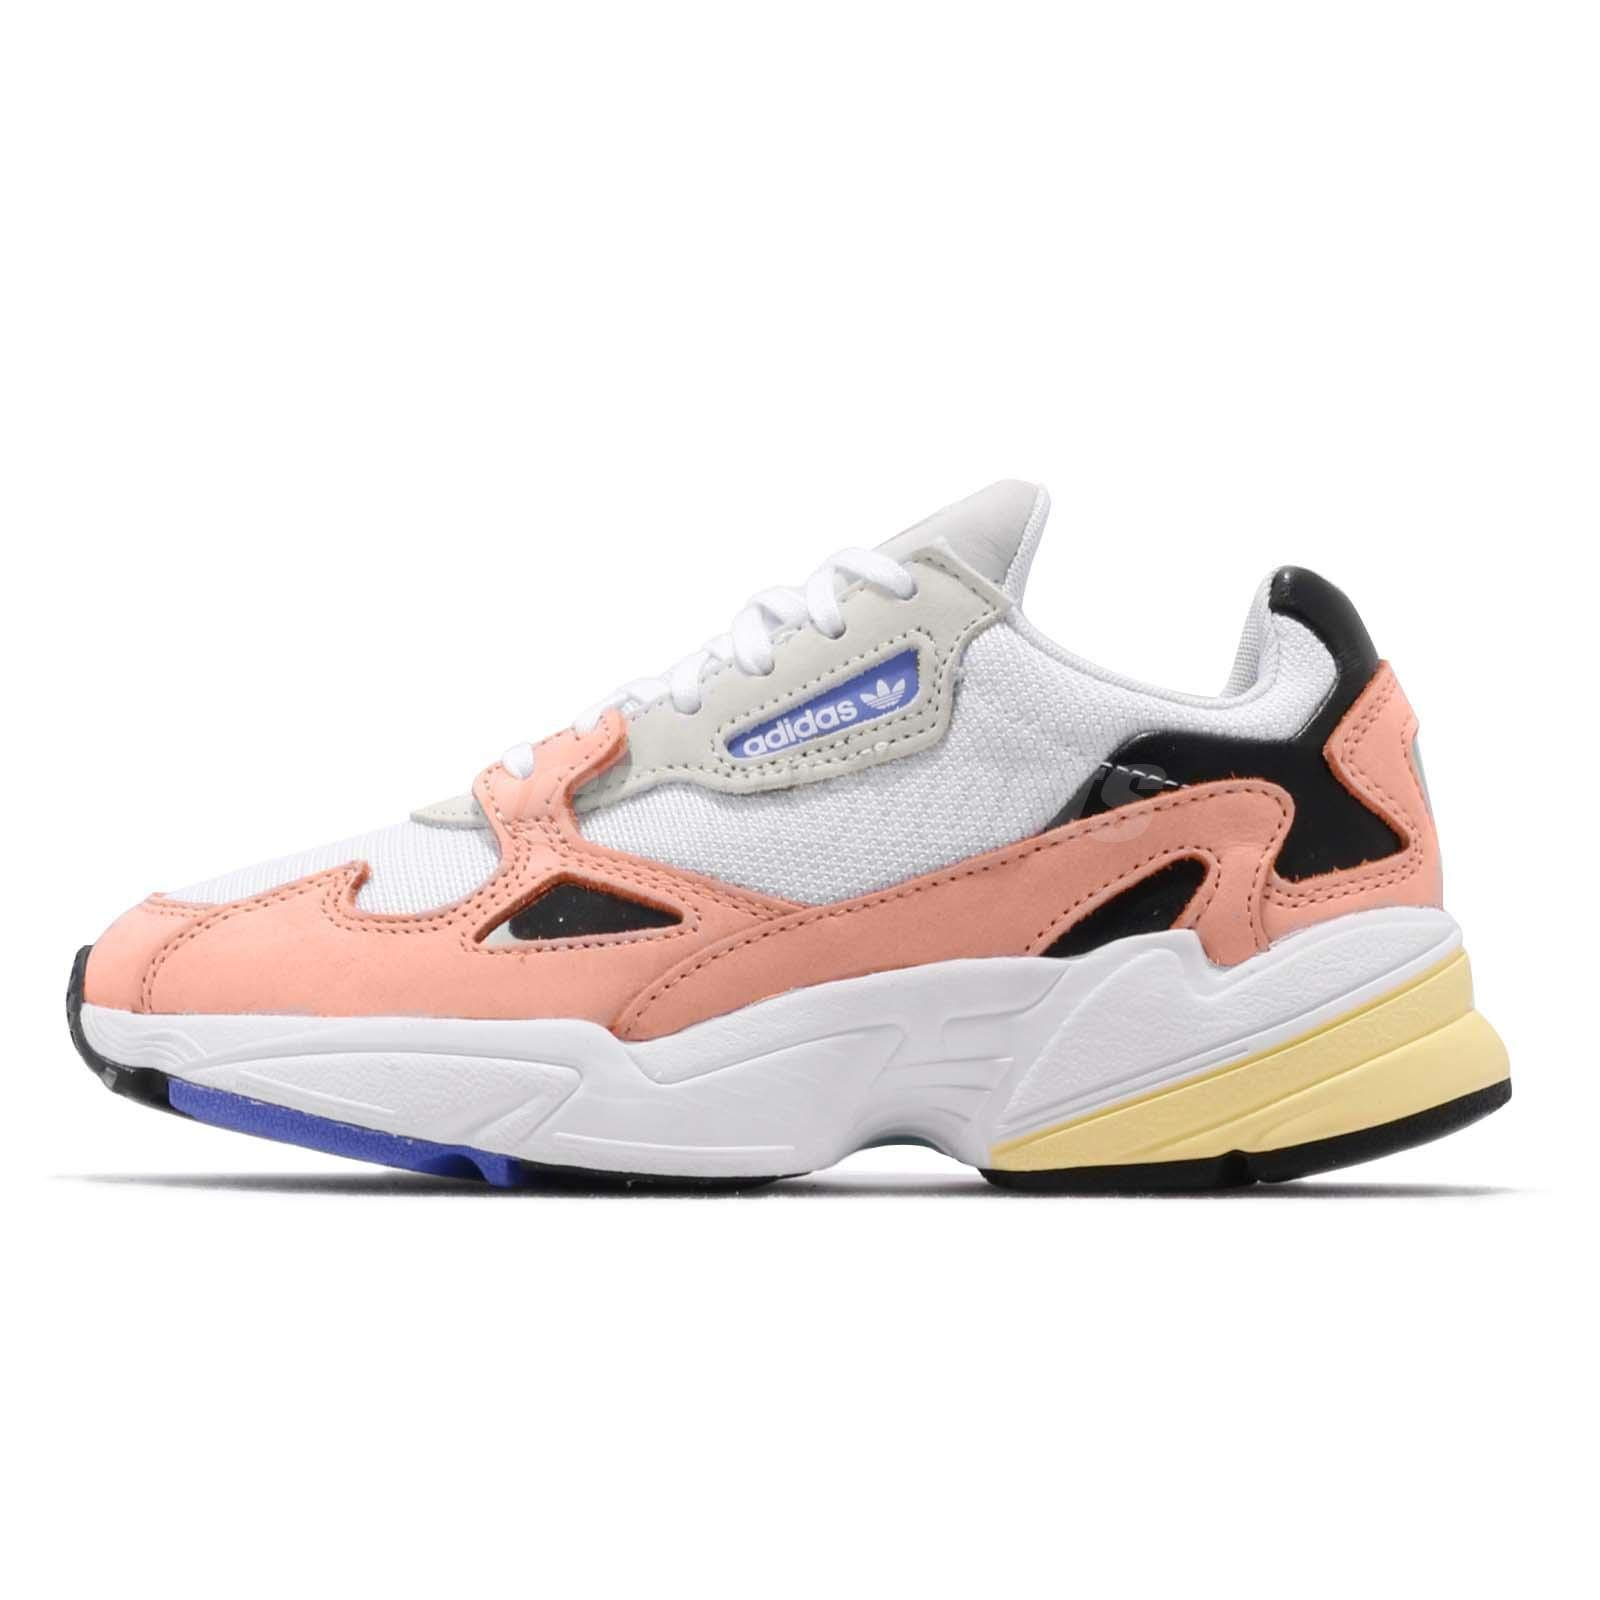 adidas Falcon Shoes Women's- Buy Online in Greenland at greenland ...